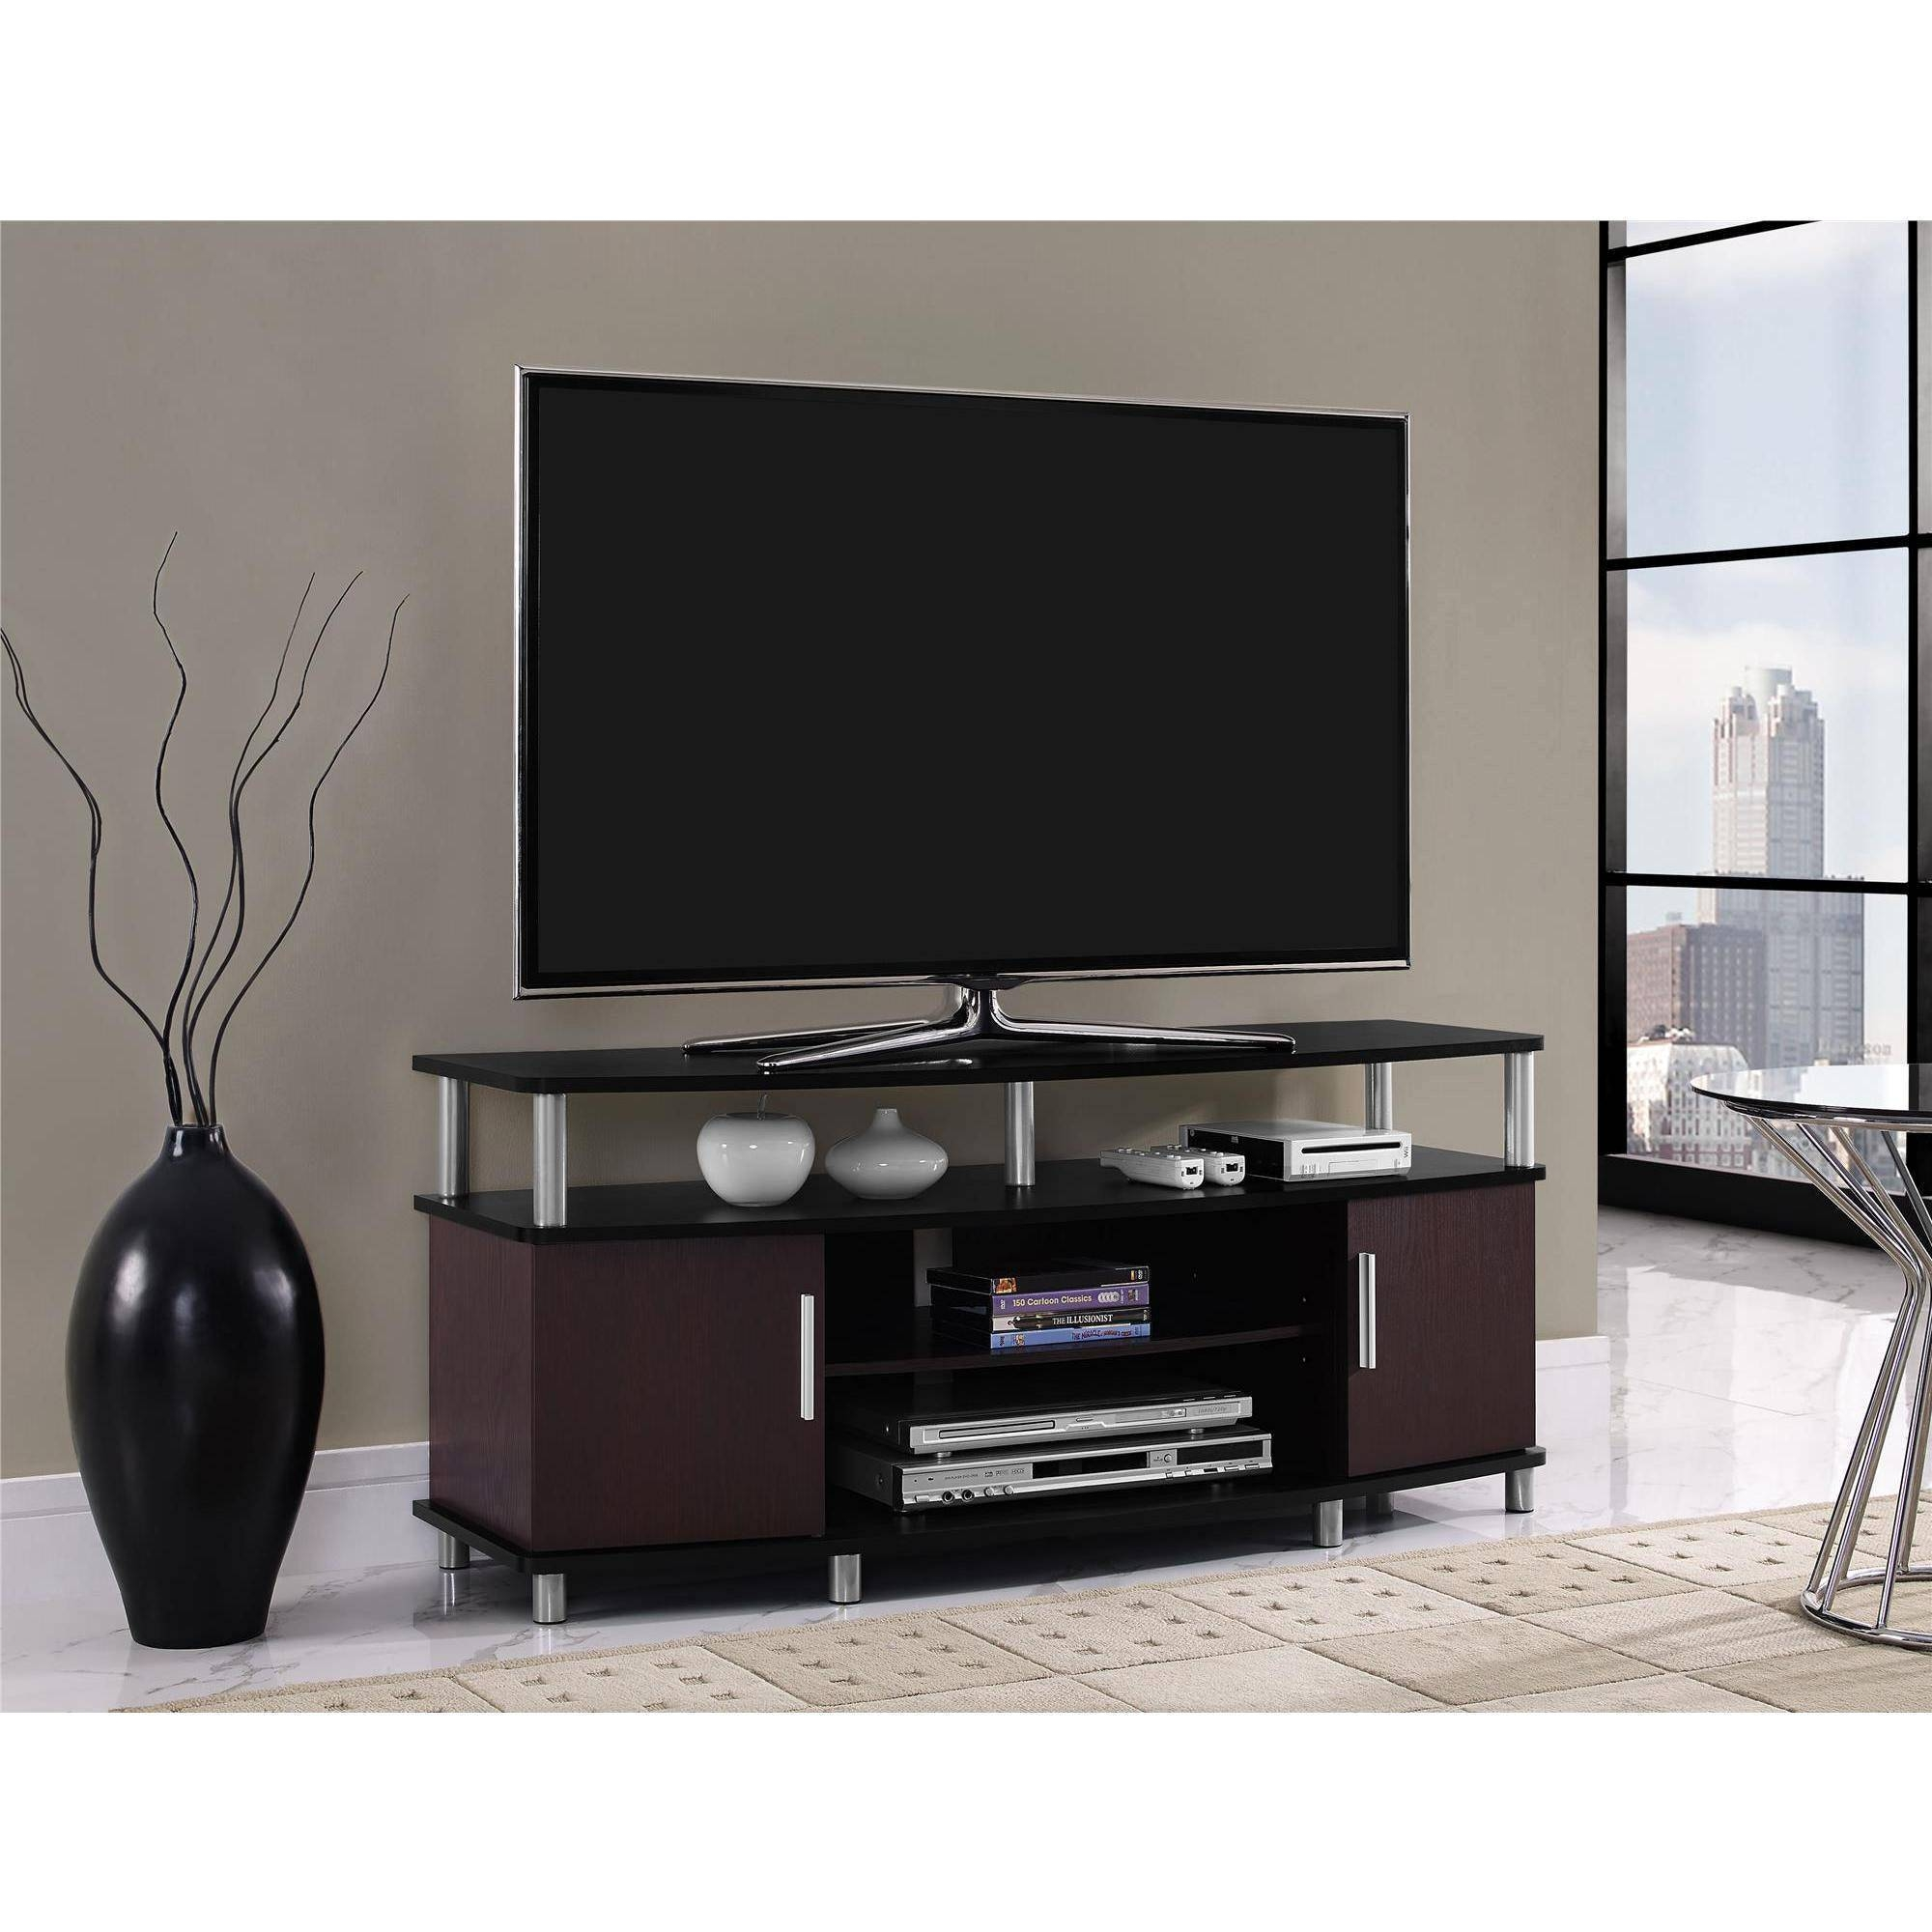 15 Best Collection Of Modern Tv Stands For Flat Screens